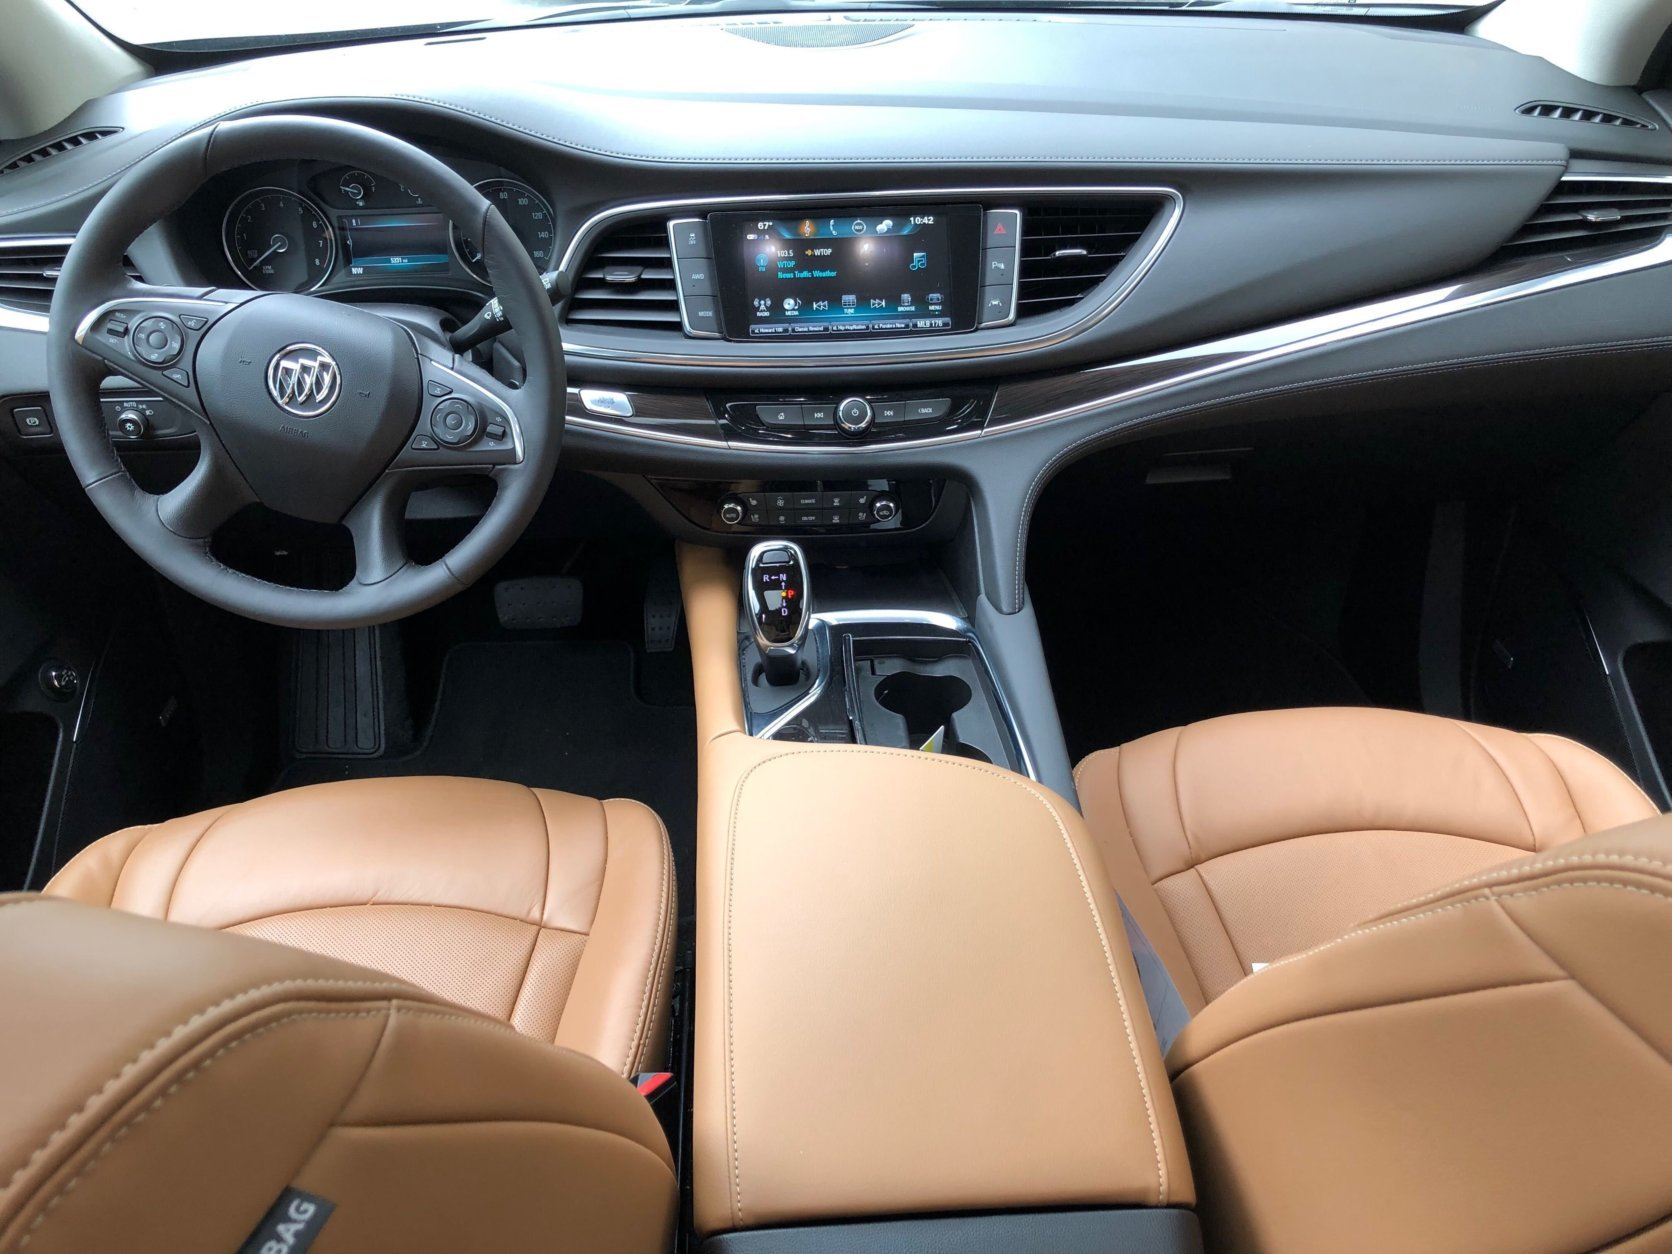 <p>The new interior includes better materials than the old, cheap hard plastics it used to feature. The V6 is a willing engine eager to accelerate, but the economy-minded transmission keeps it in check.</p>